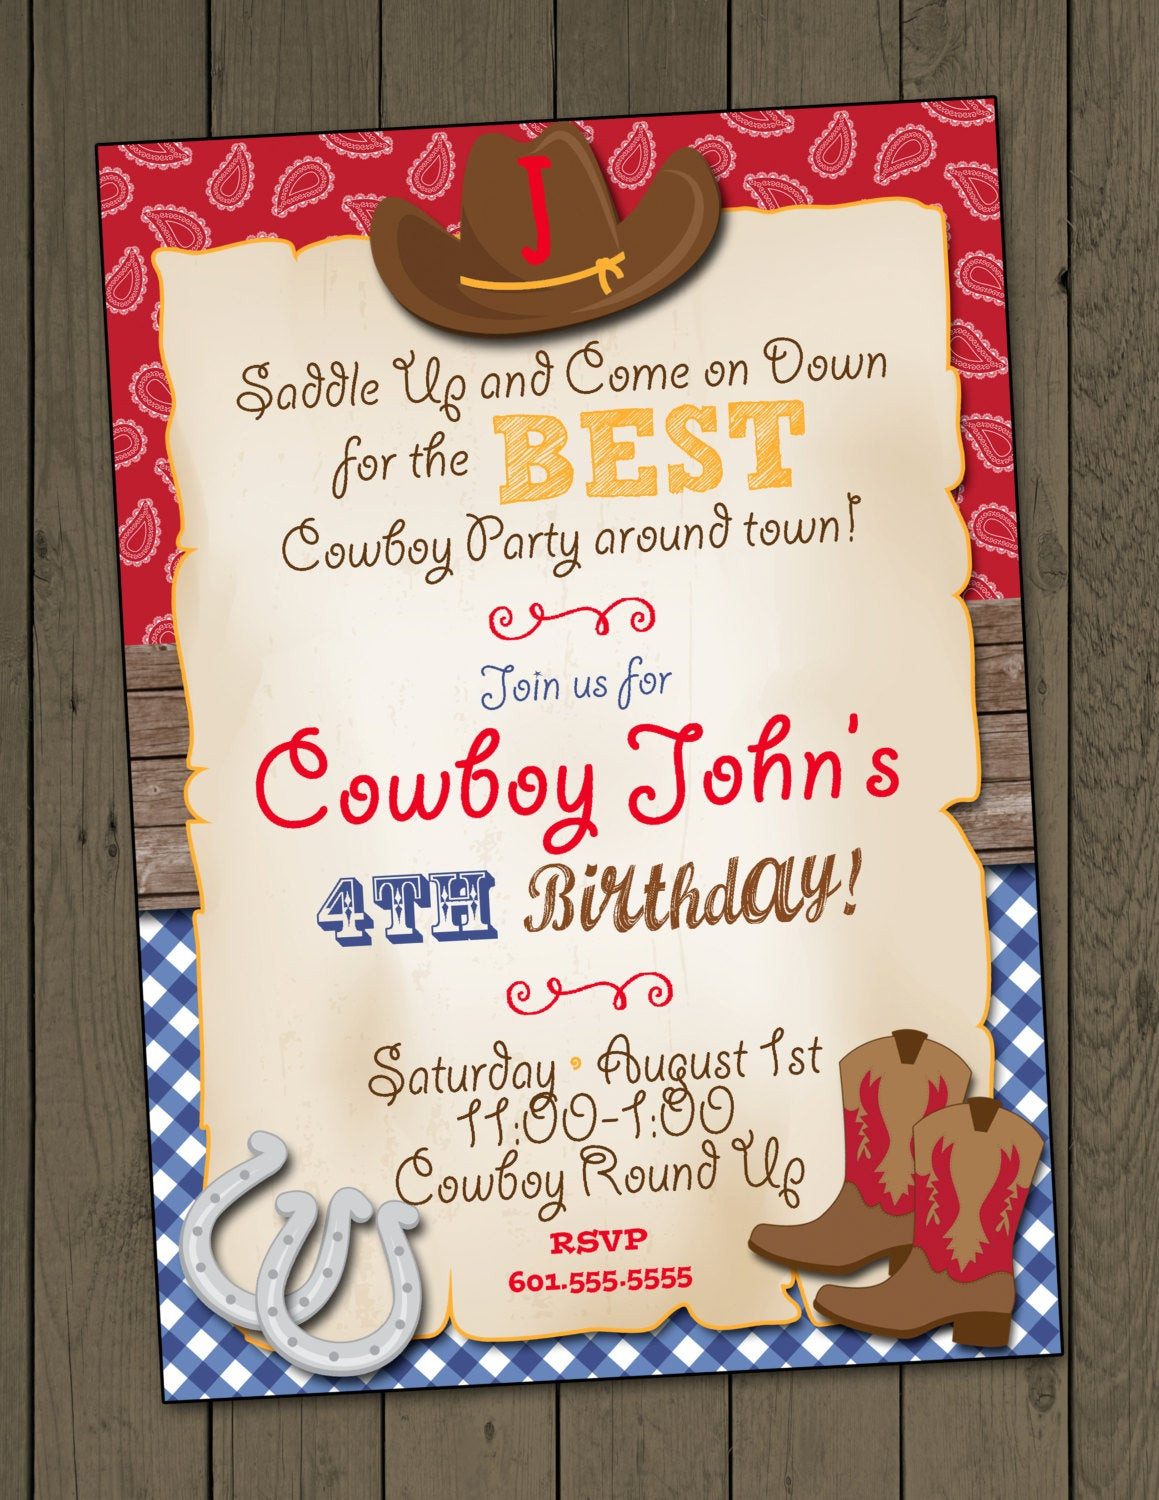 Best ideas about Cowboy Birthday Invitations . Save or Pin Cowboy Birthday Party Invitation Cowboy Invitation Digital Now.